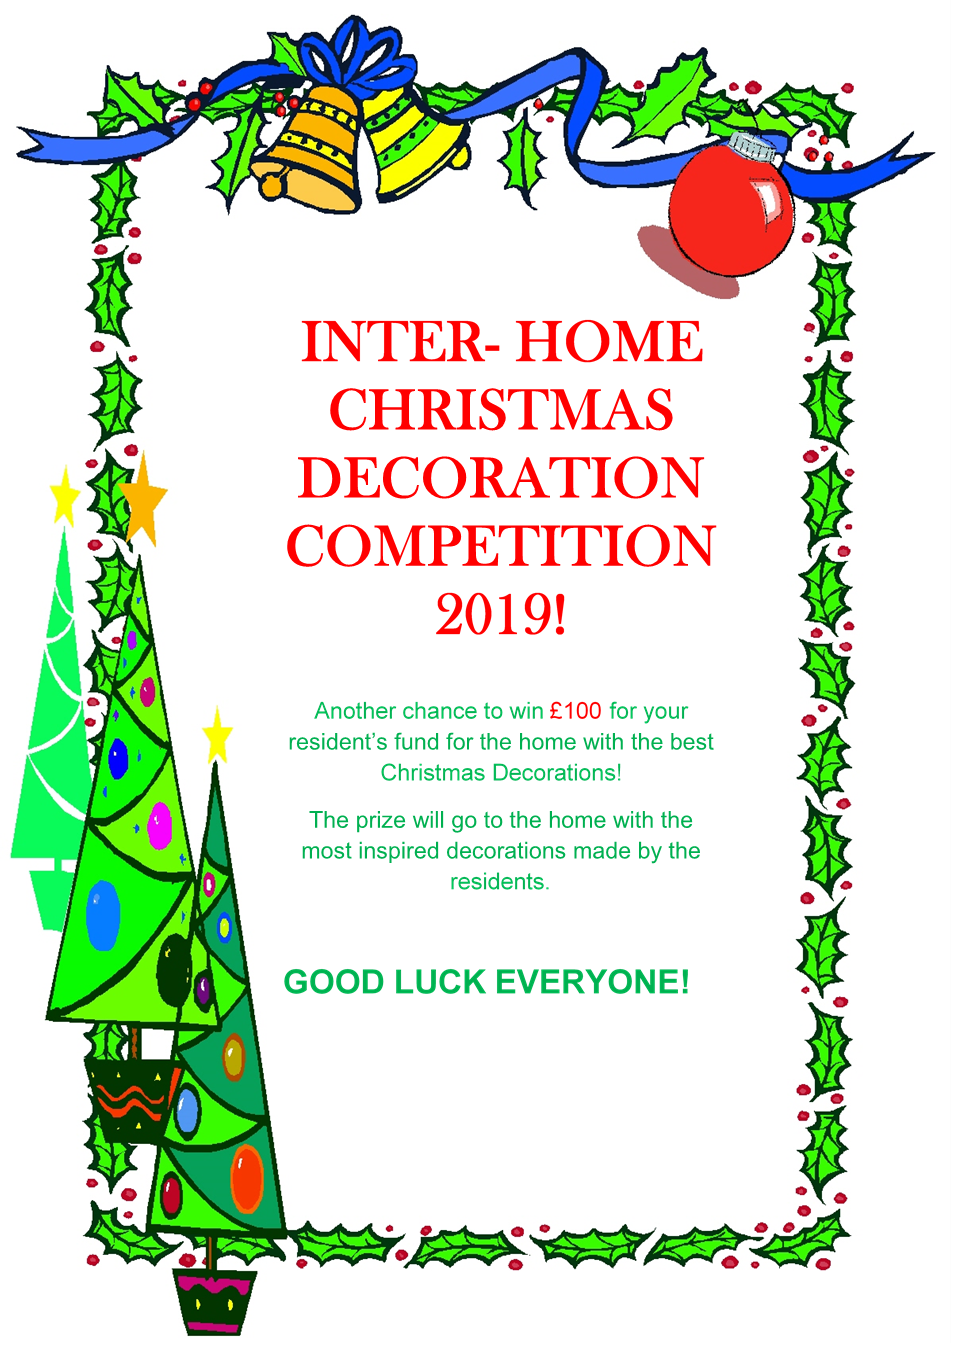 Inter-Home Christmas Decoration Competition 2019 Image